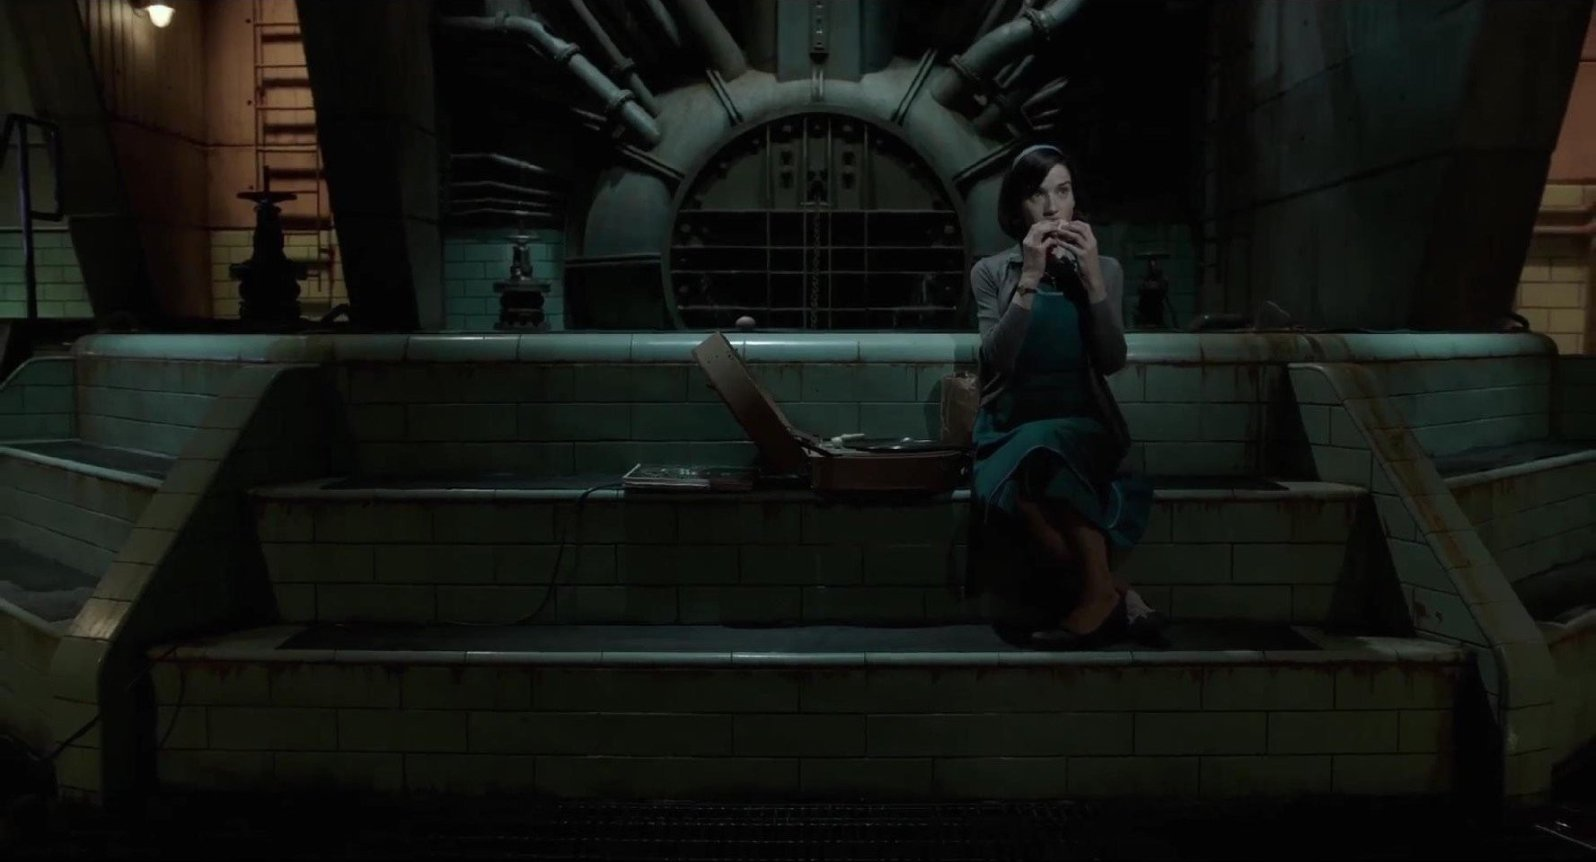 The Shape of Water / Production Designer: Paul Austerberry / Fox Searchlight